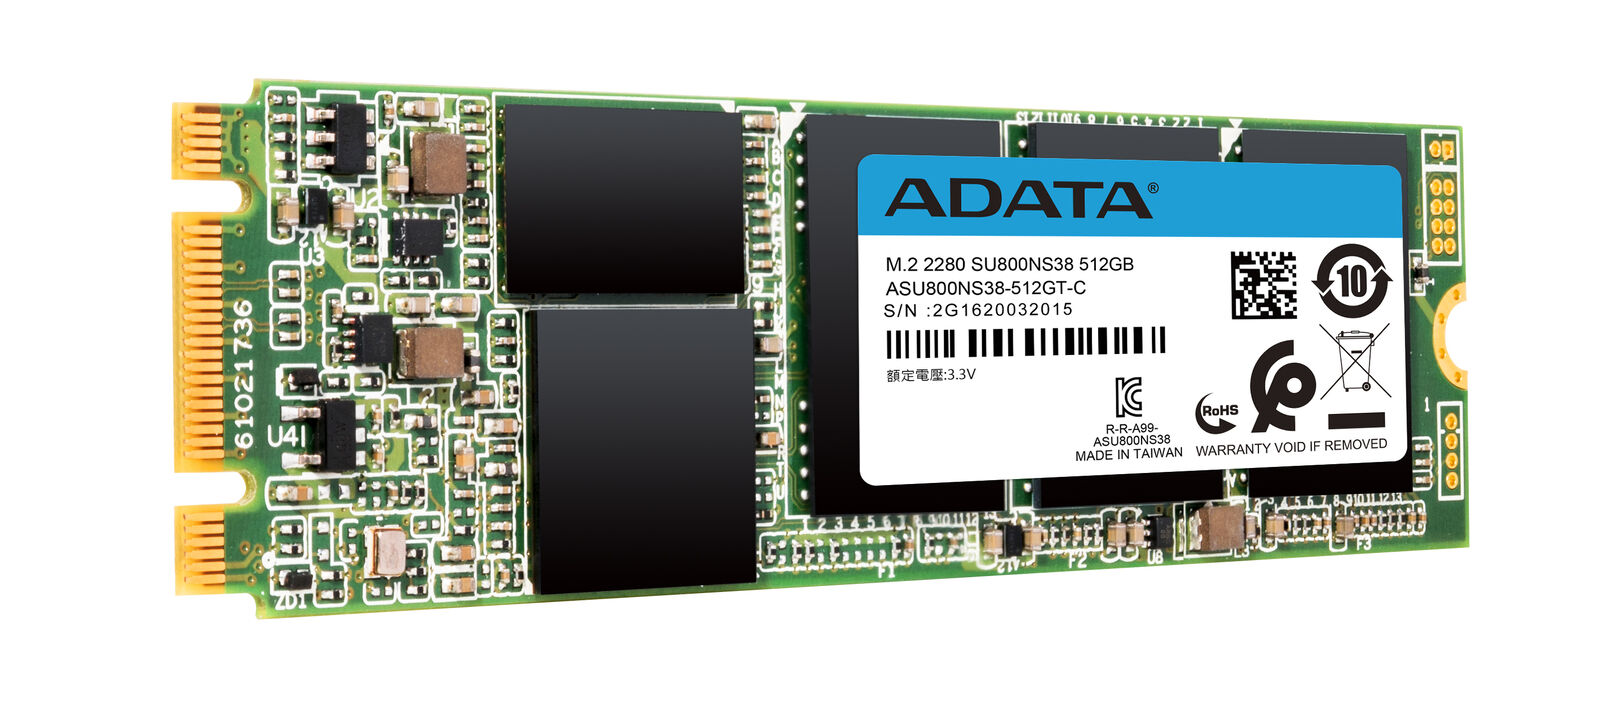 ADATA Ultimate Series: SU800 512GB SATA M.2 2280 Solid State Drive. Buy it now for 53.99